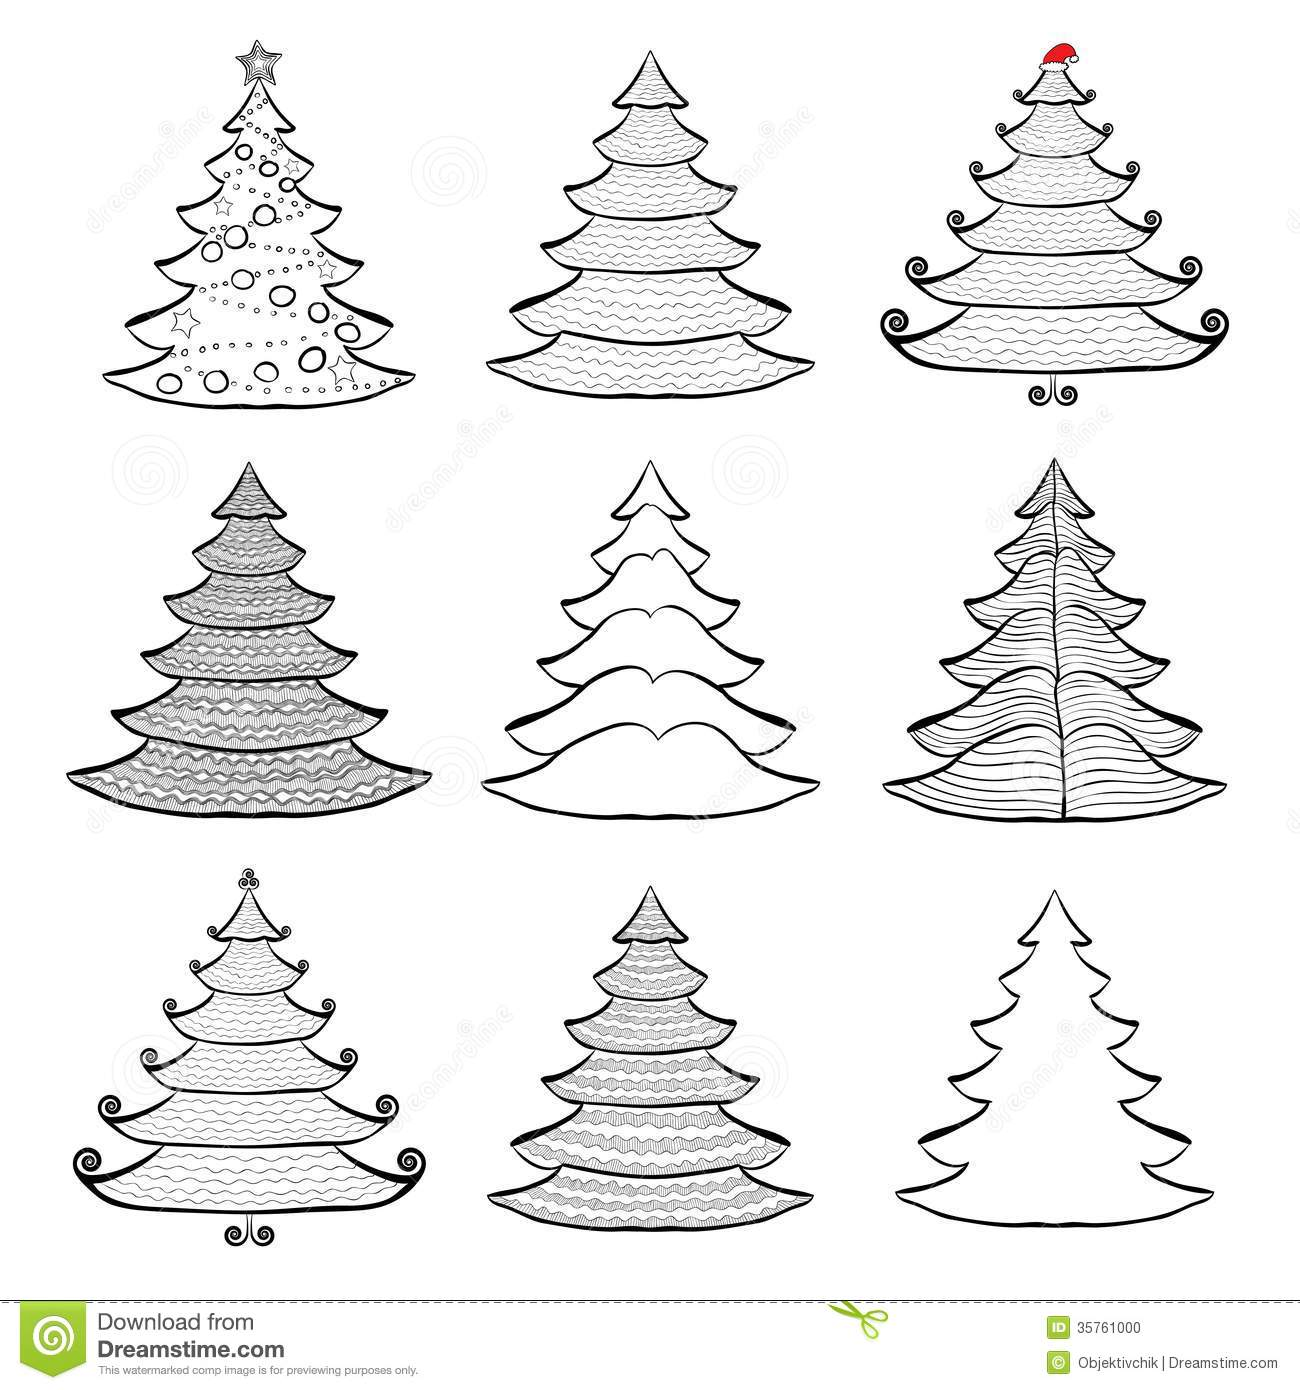 Christmas tree drawing black and white - Nine Christmas Trees Set Black On White Stock Photo